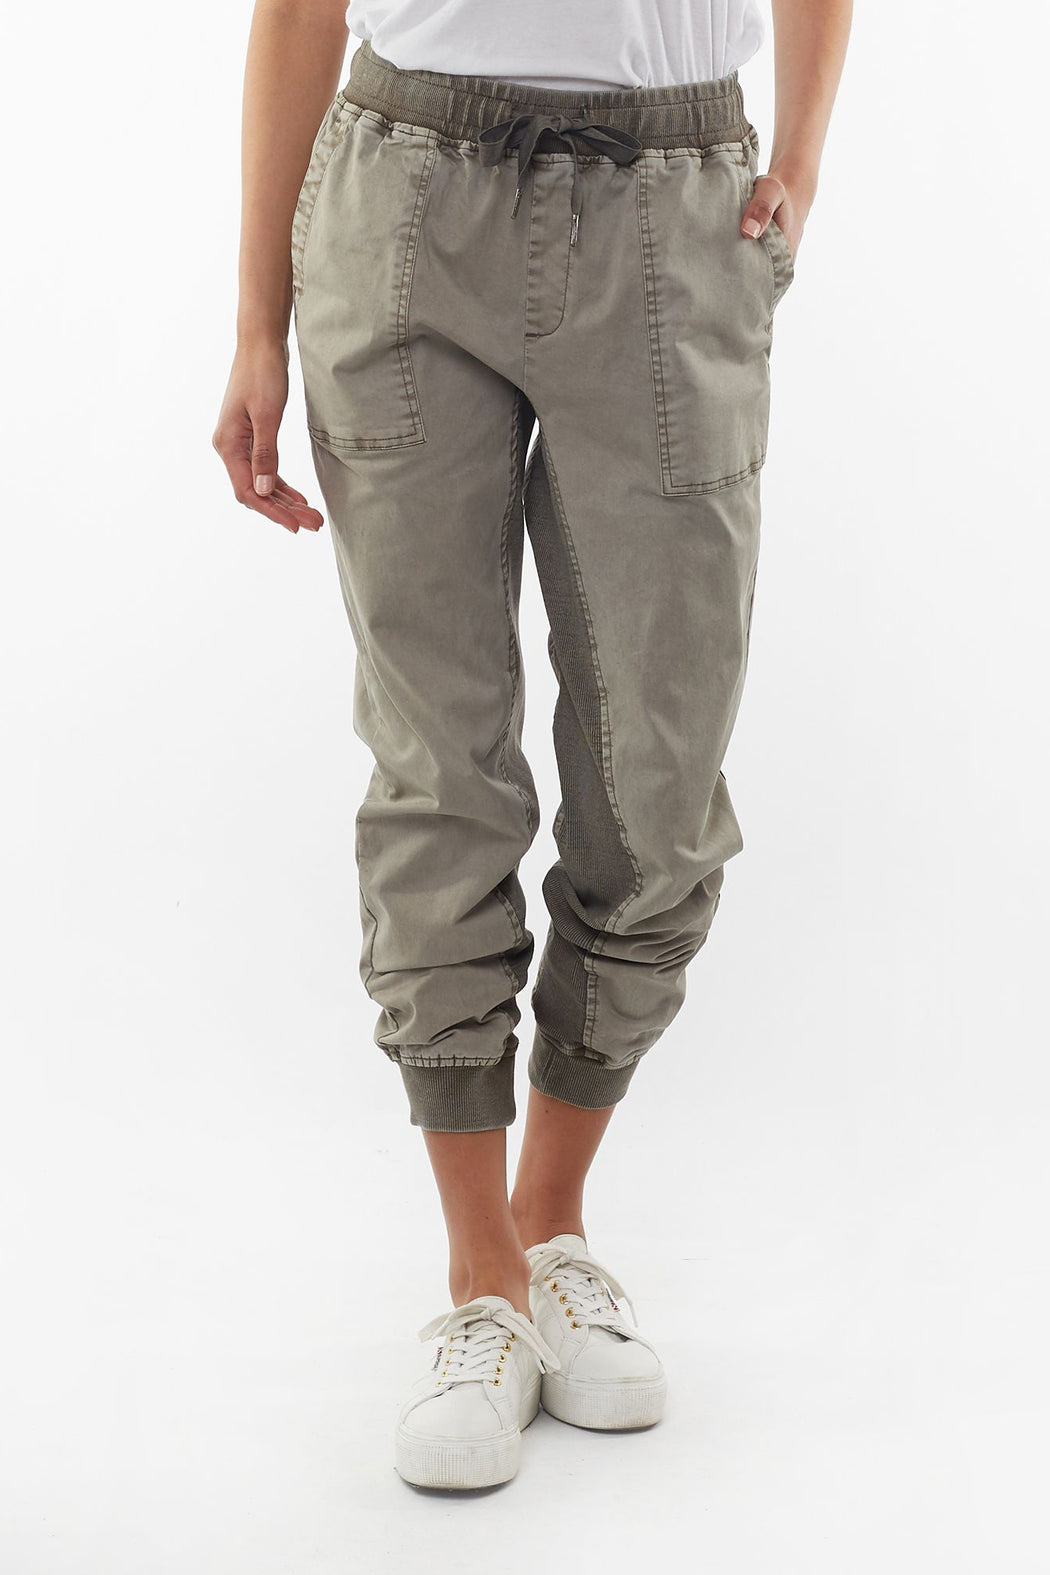 Elm Let Loose Jogger - Khaki | Shop Elm at Wallace & Gibb